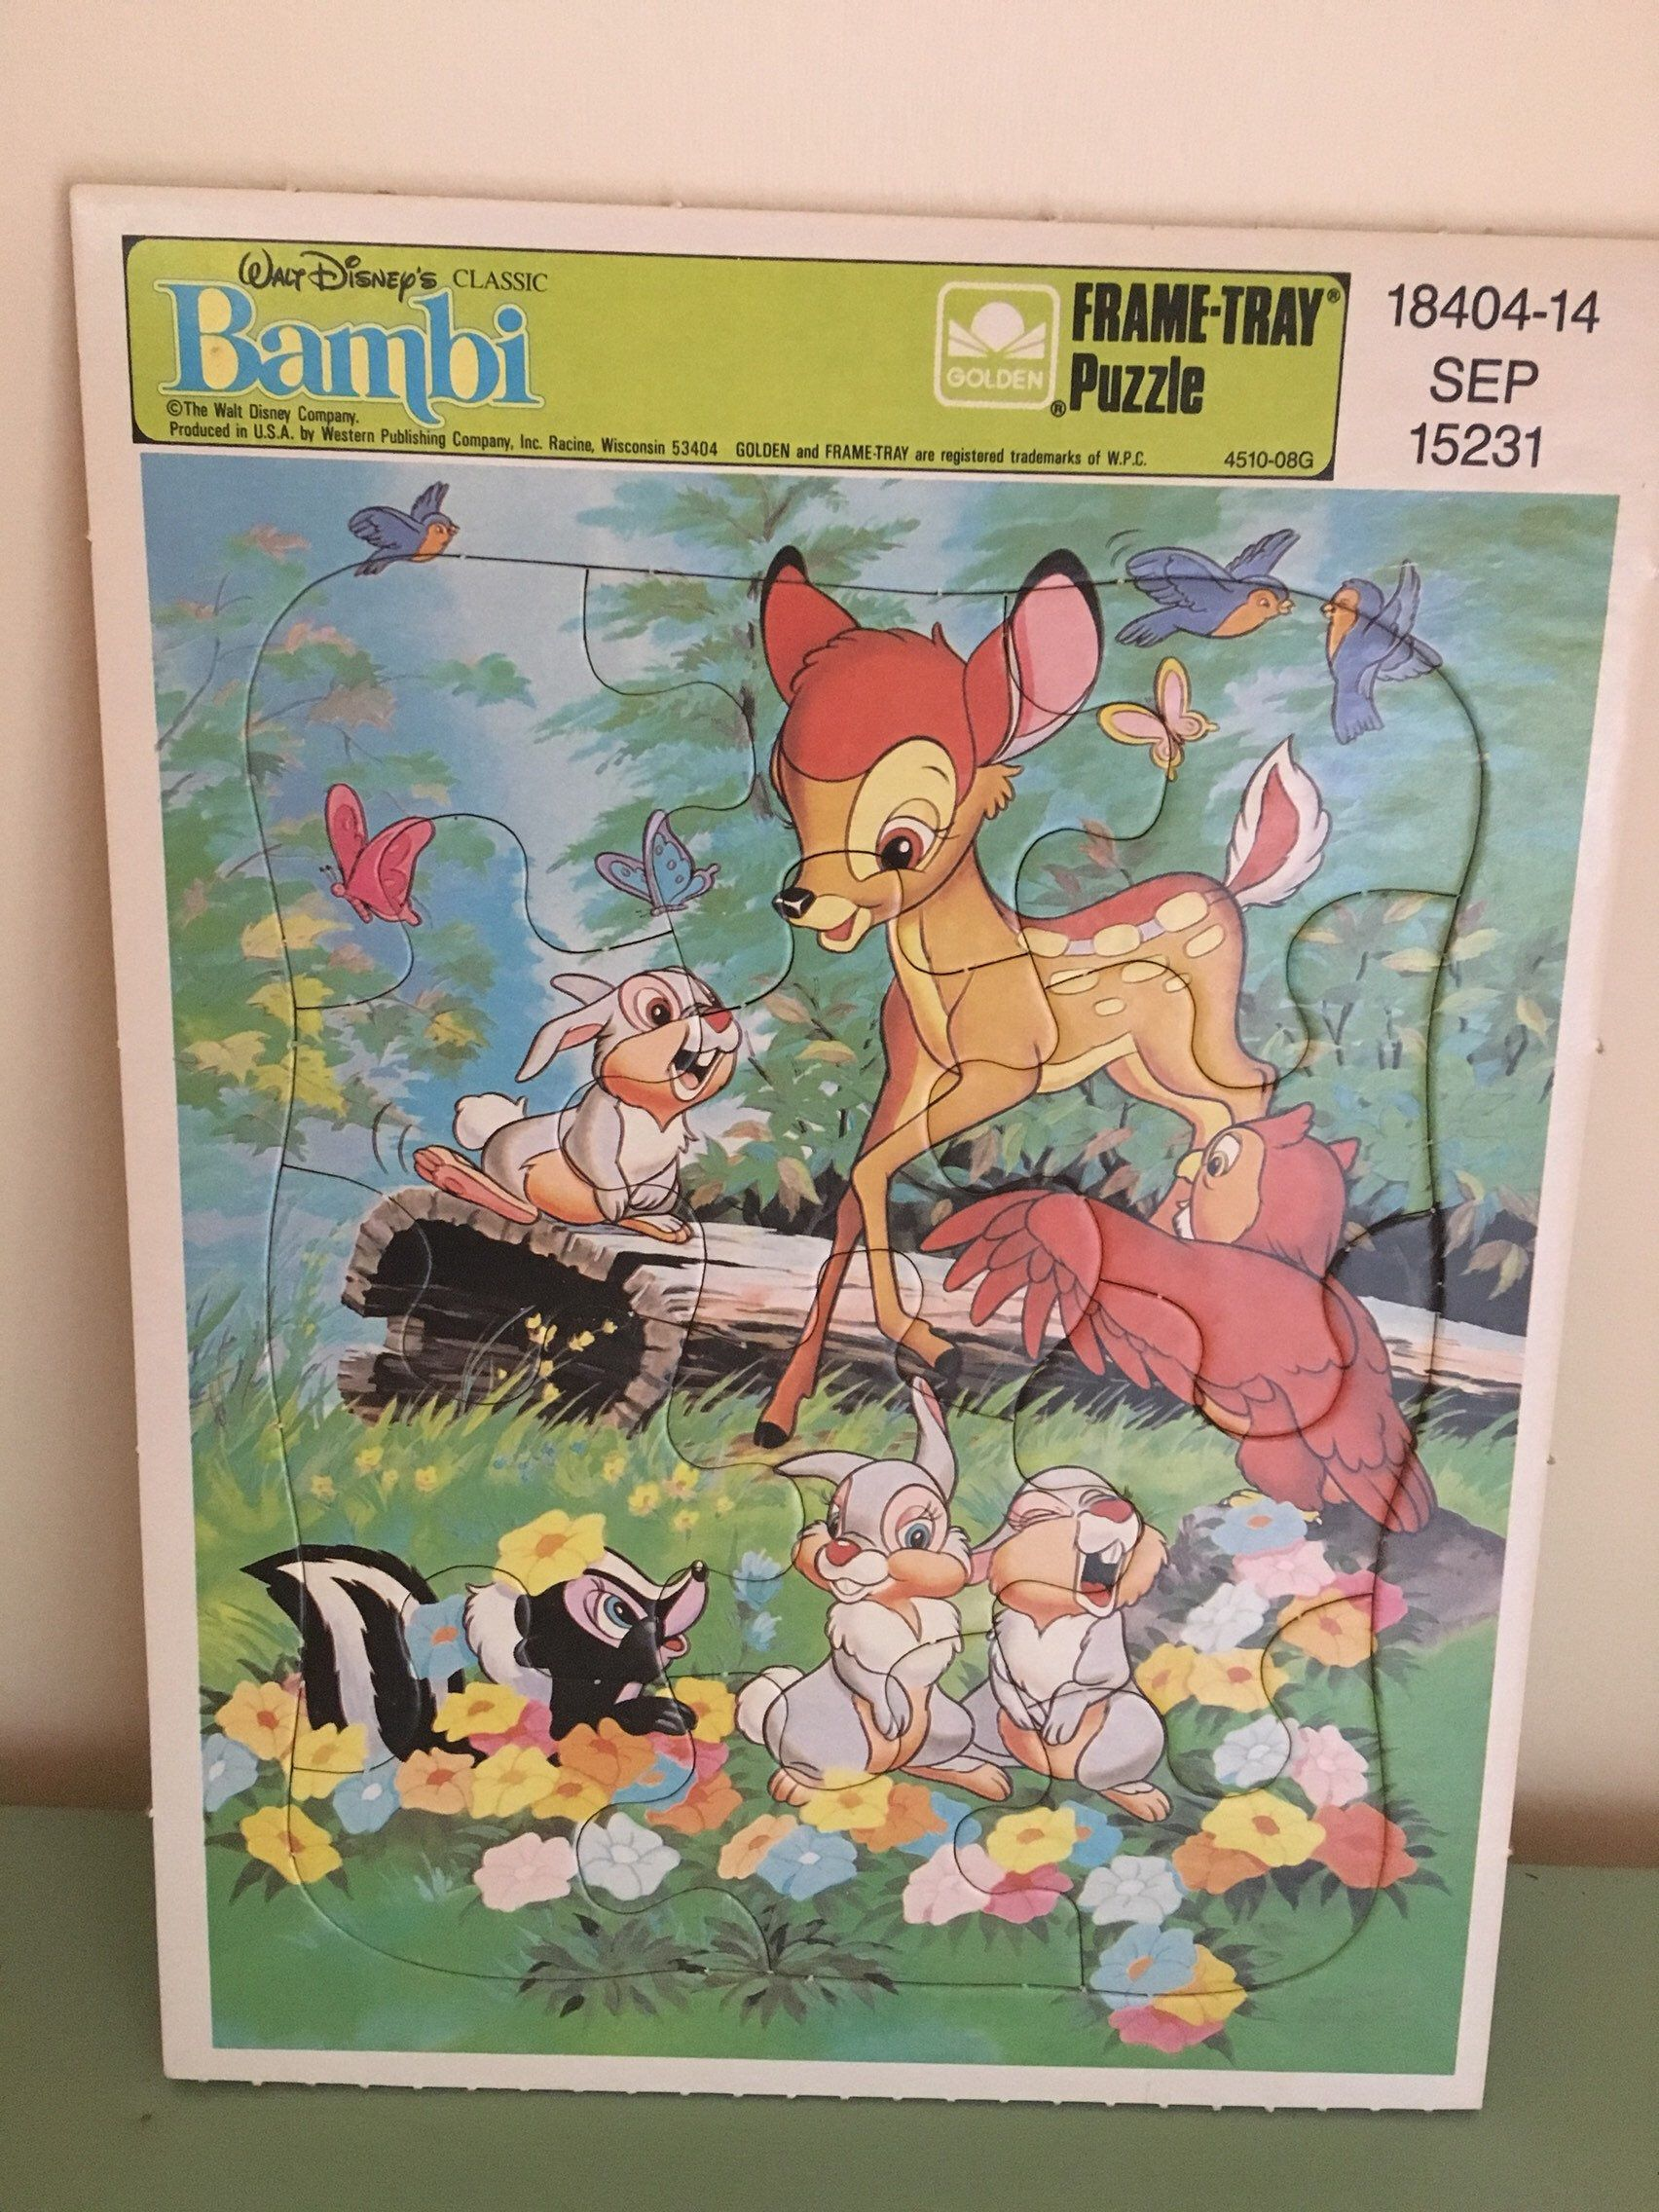 Excited To Share This Item From My Etsy Shop 80 S Walt Disney S Classic Bambi Frame Tray Puzzle Disney Puzzles Vintage Disney My Childhood Memories